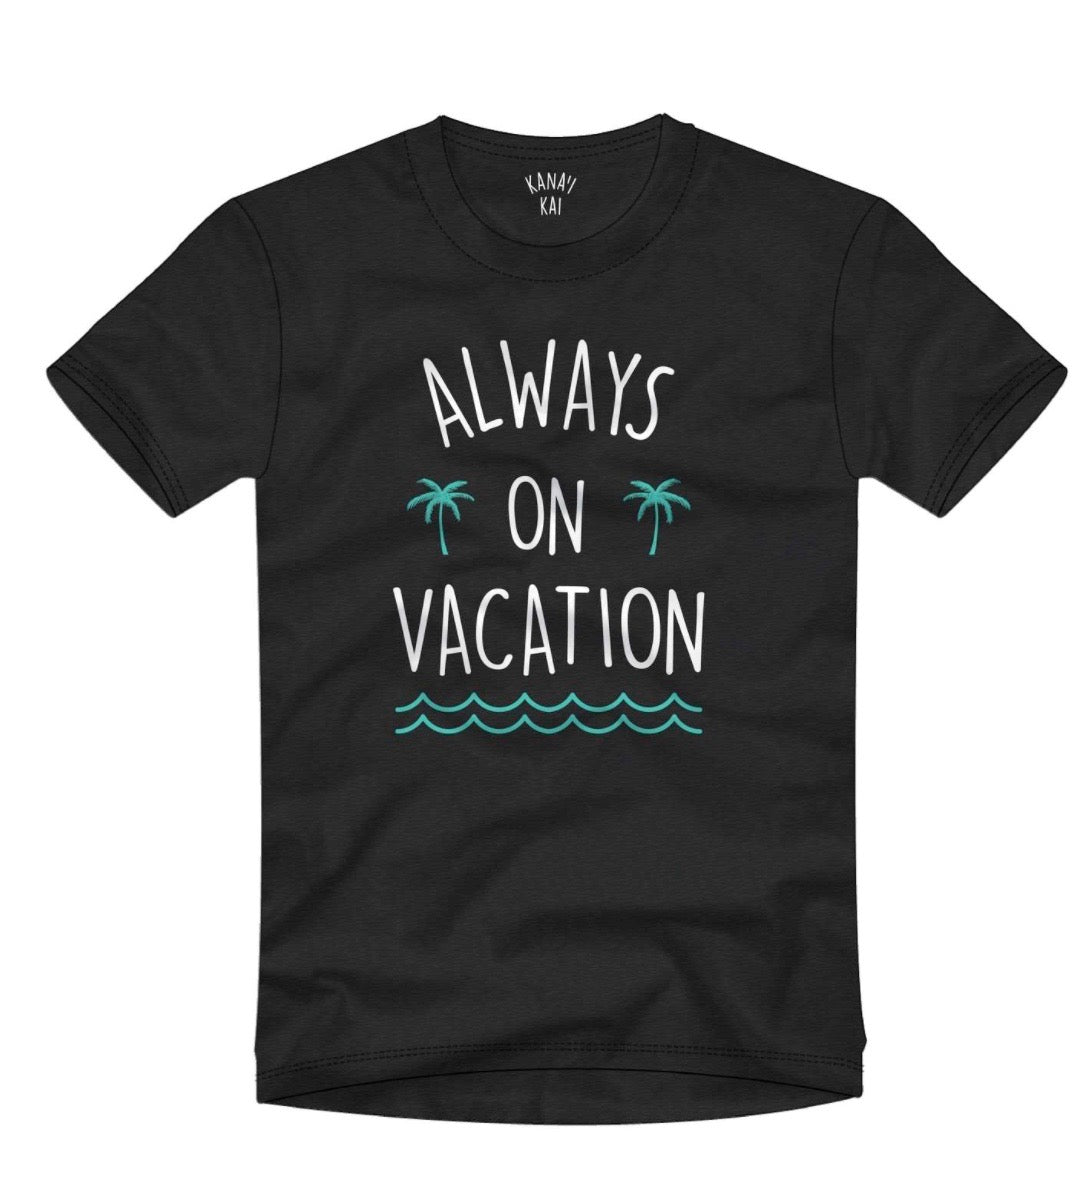 Kana'i Kai - Always On Vacation (Tee)